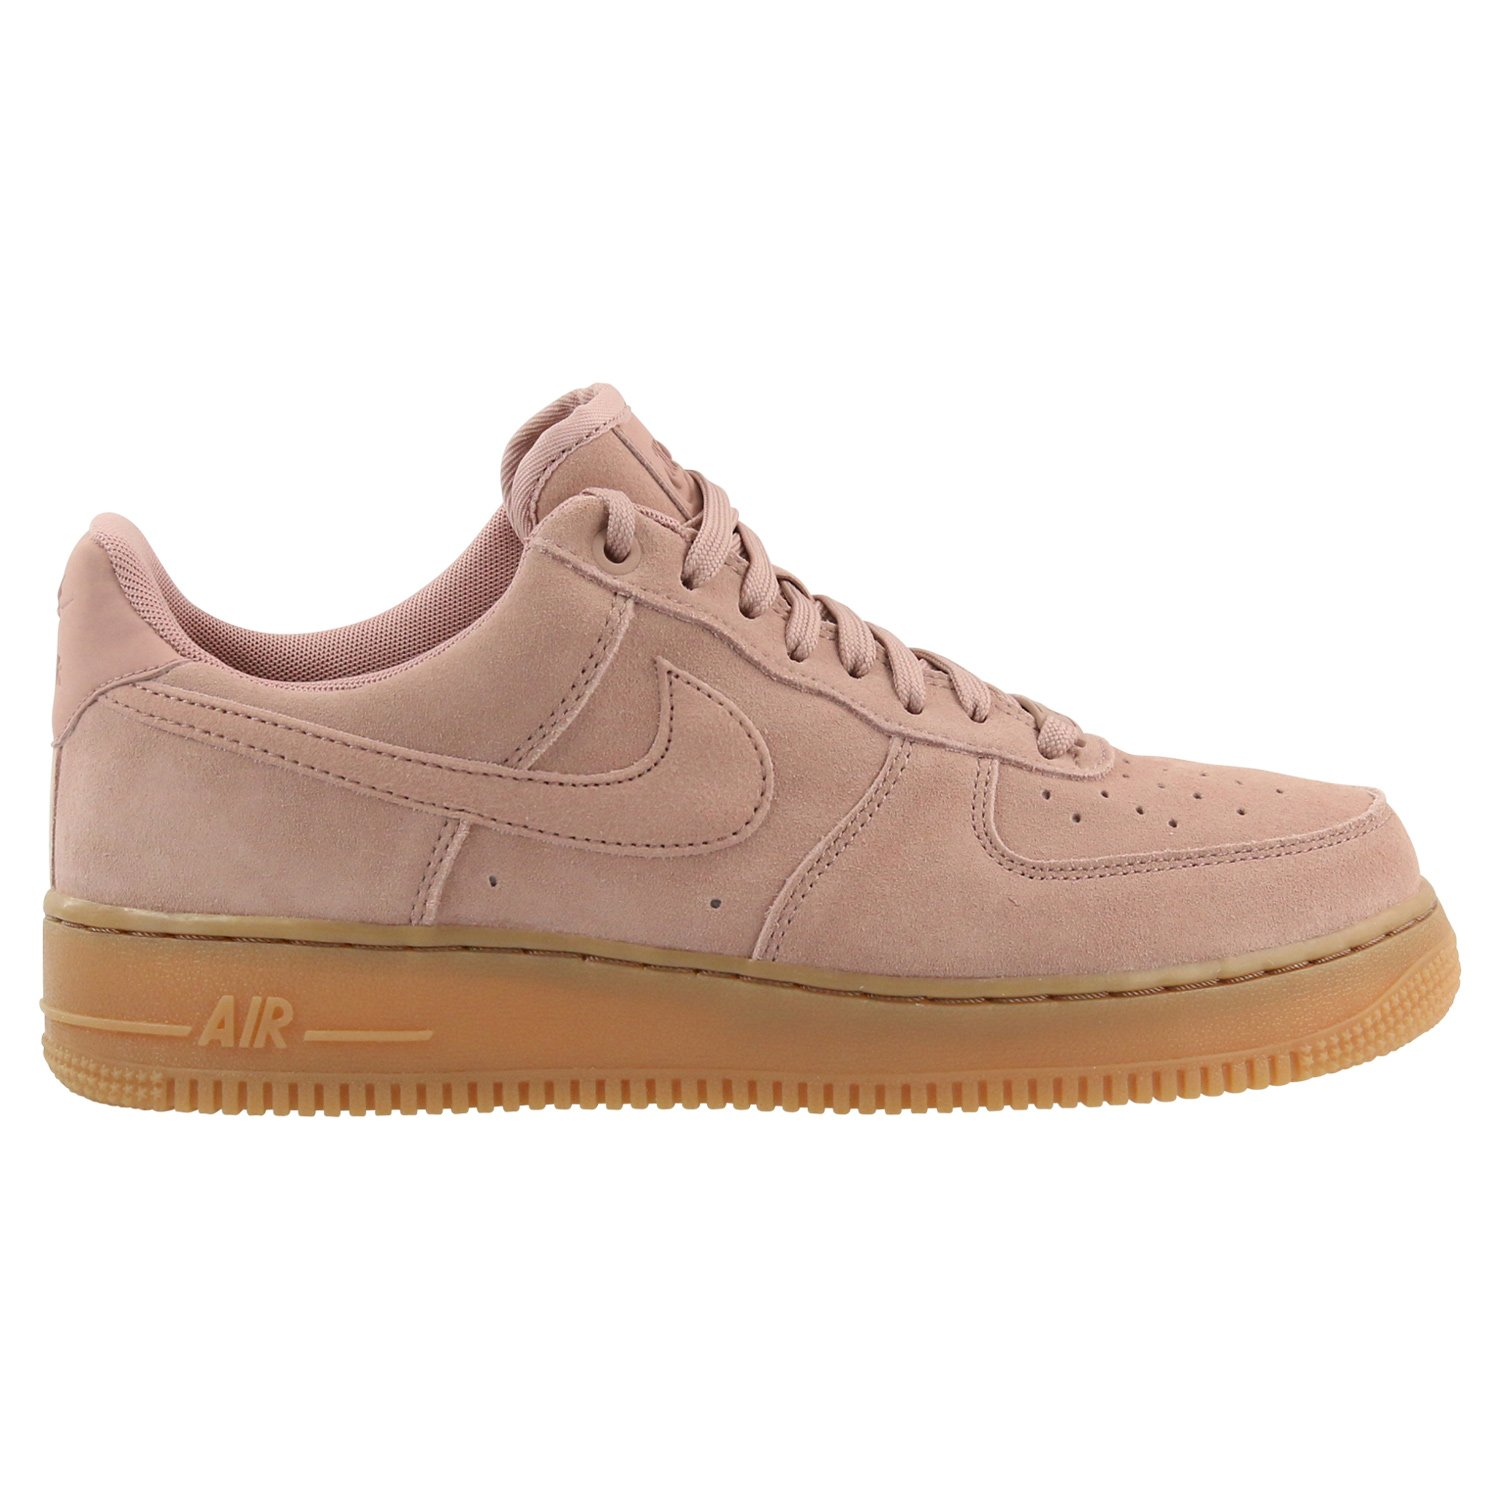 Buy Nike Men's Air Force 1 '07 Lv8 JDI Lthr Leather